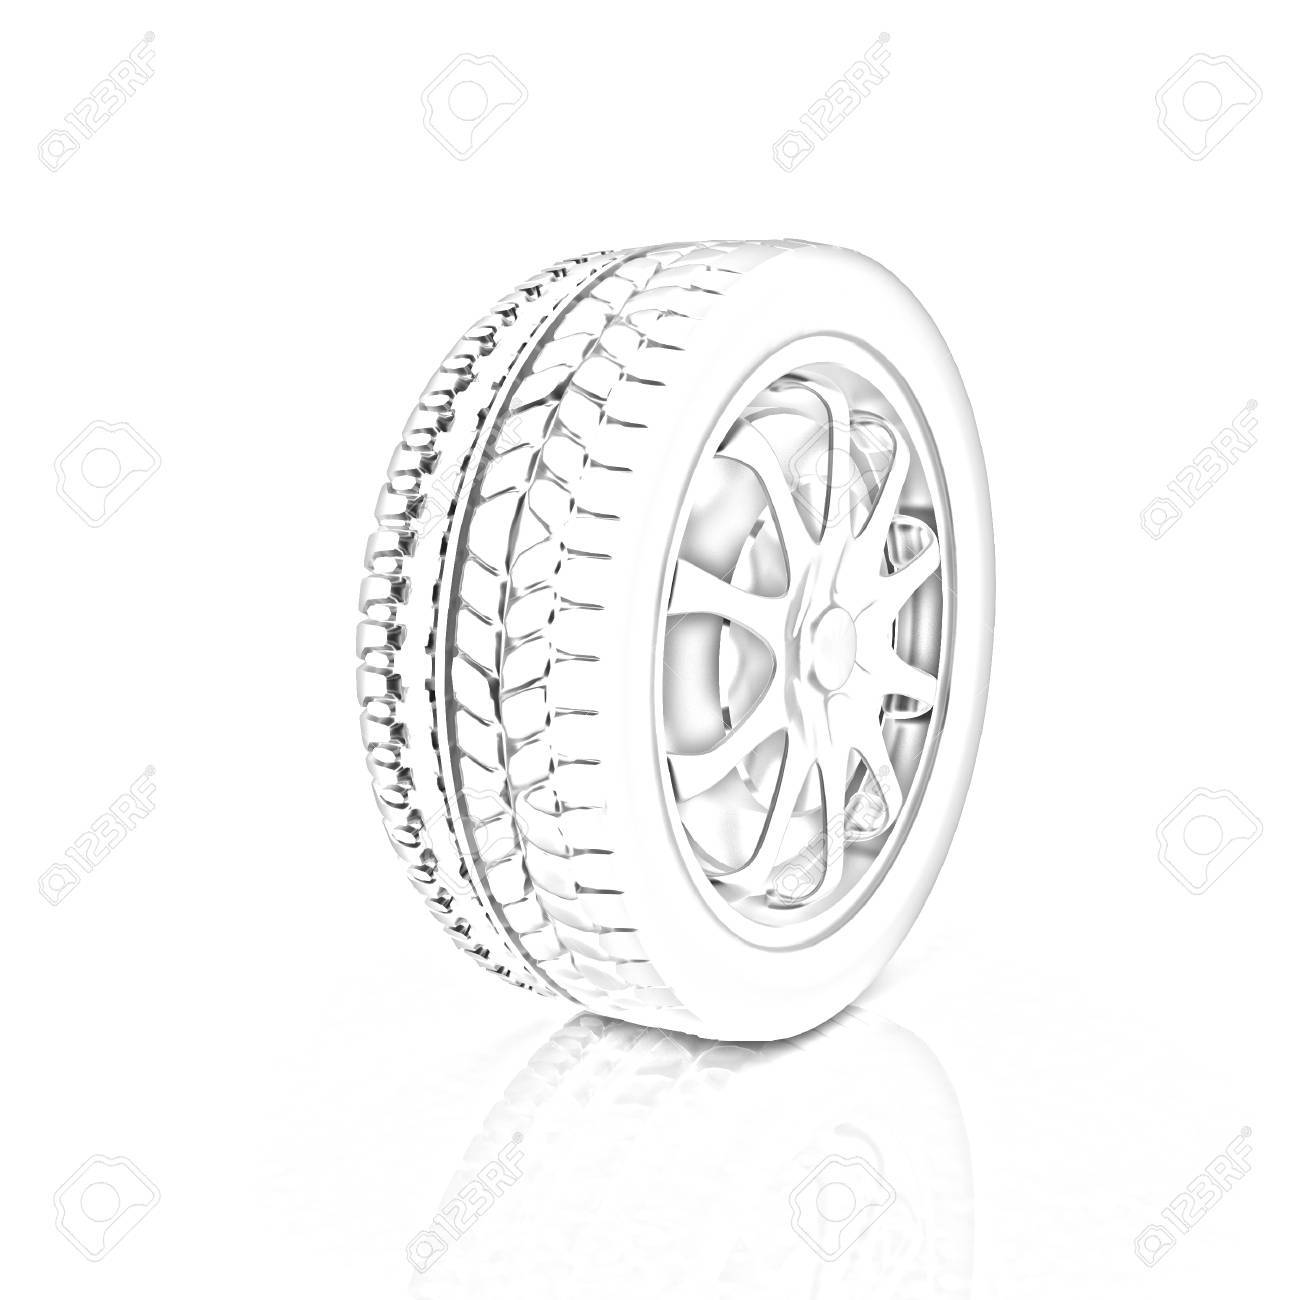 Car Wheels Icon On White Background Pencil Drawing Stock Photo Picture And Royalty Free Image Image 32047659